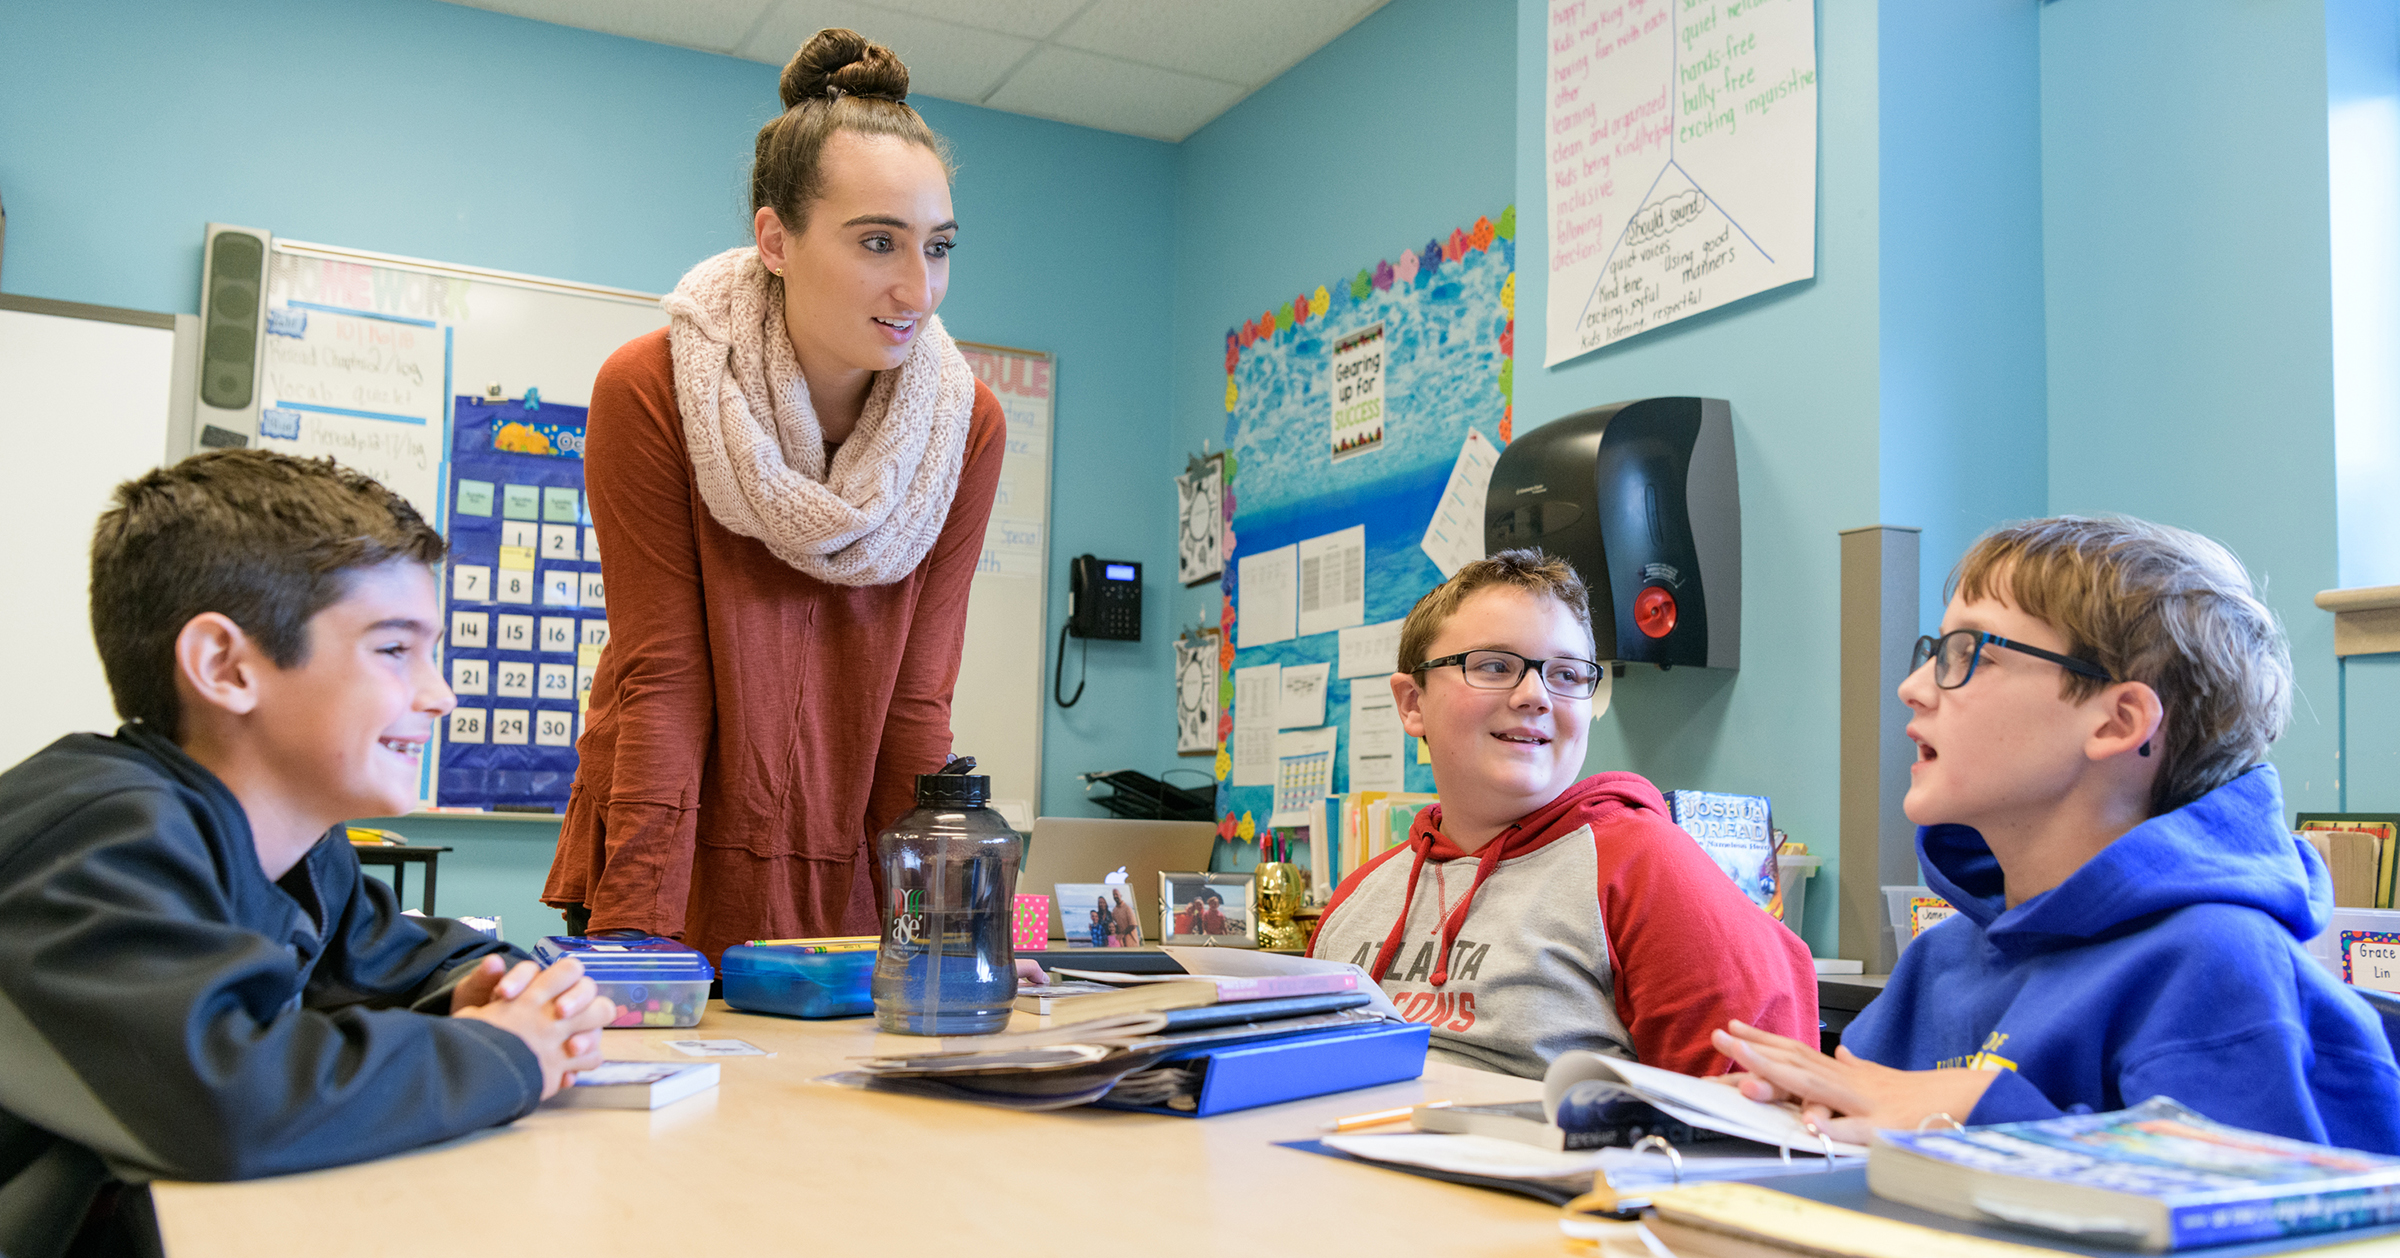 A student teacher in UD's ETE program works with children around a classroom table on CEHD's Children's Campus.